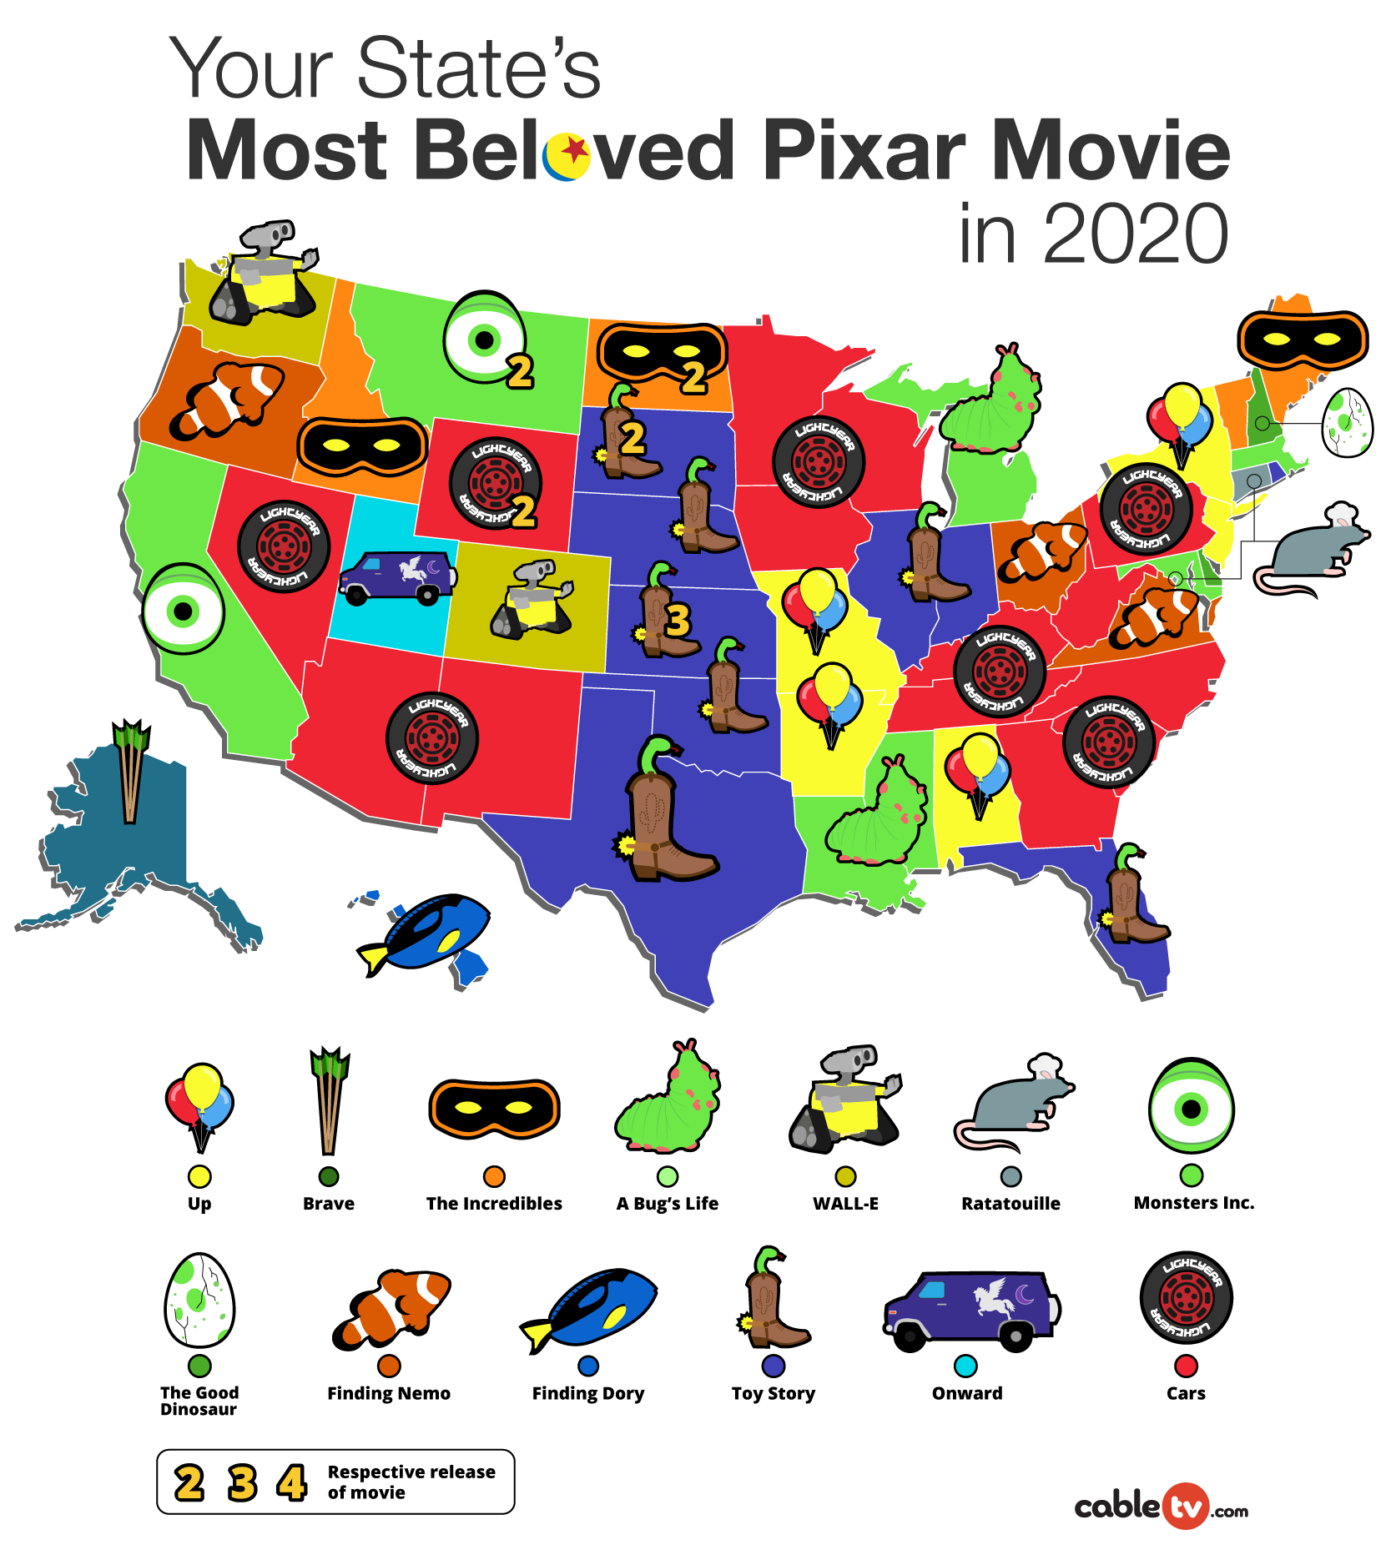 Your State's Most Beloved Pixar Movie Map